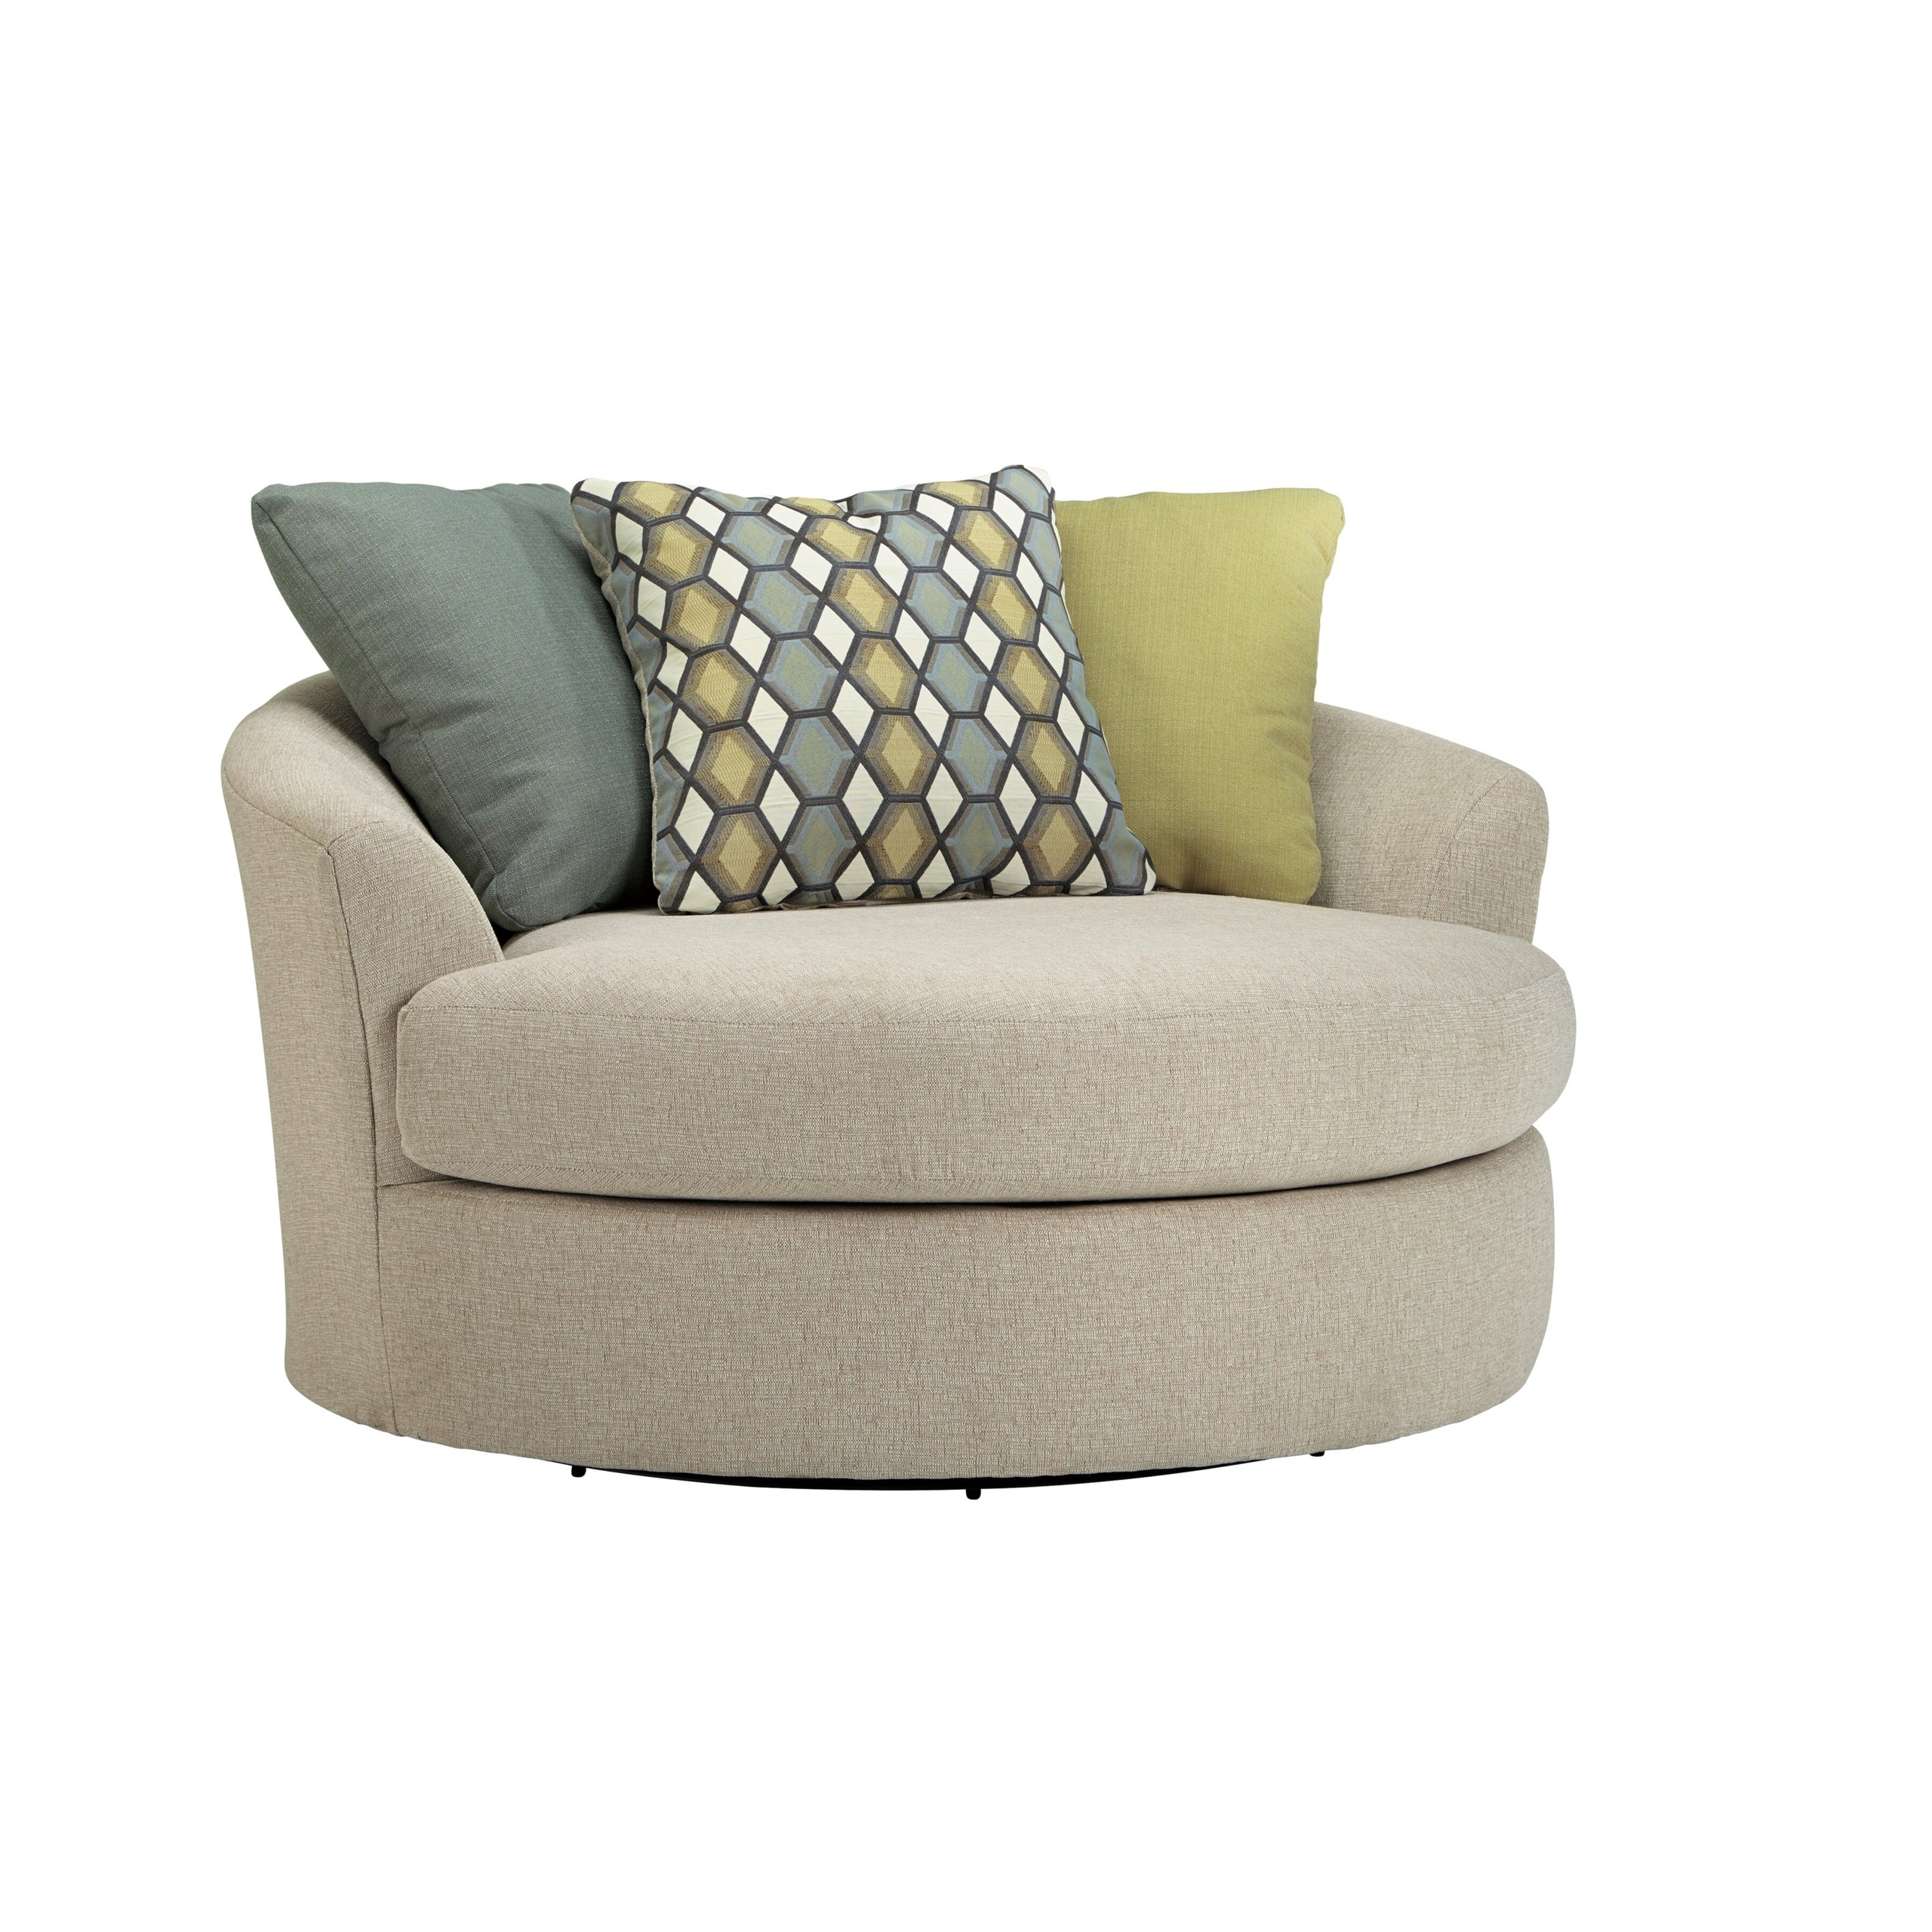 Casheral Oversized Swivel Chair  sc 1 st  Foter & Oversized Swivel Chairs - Foter